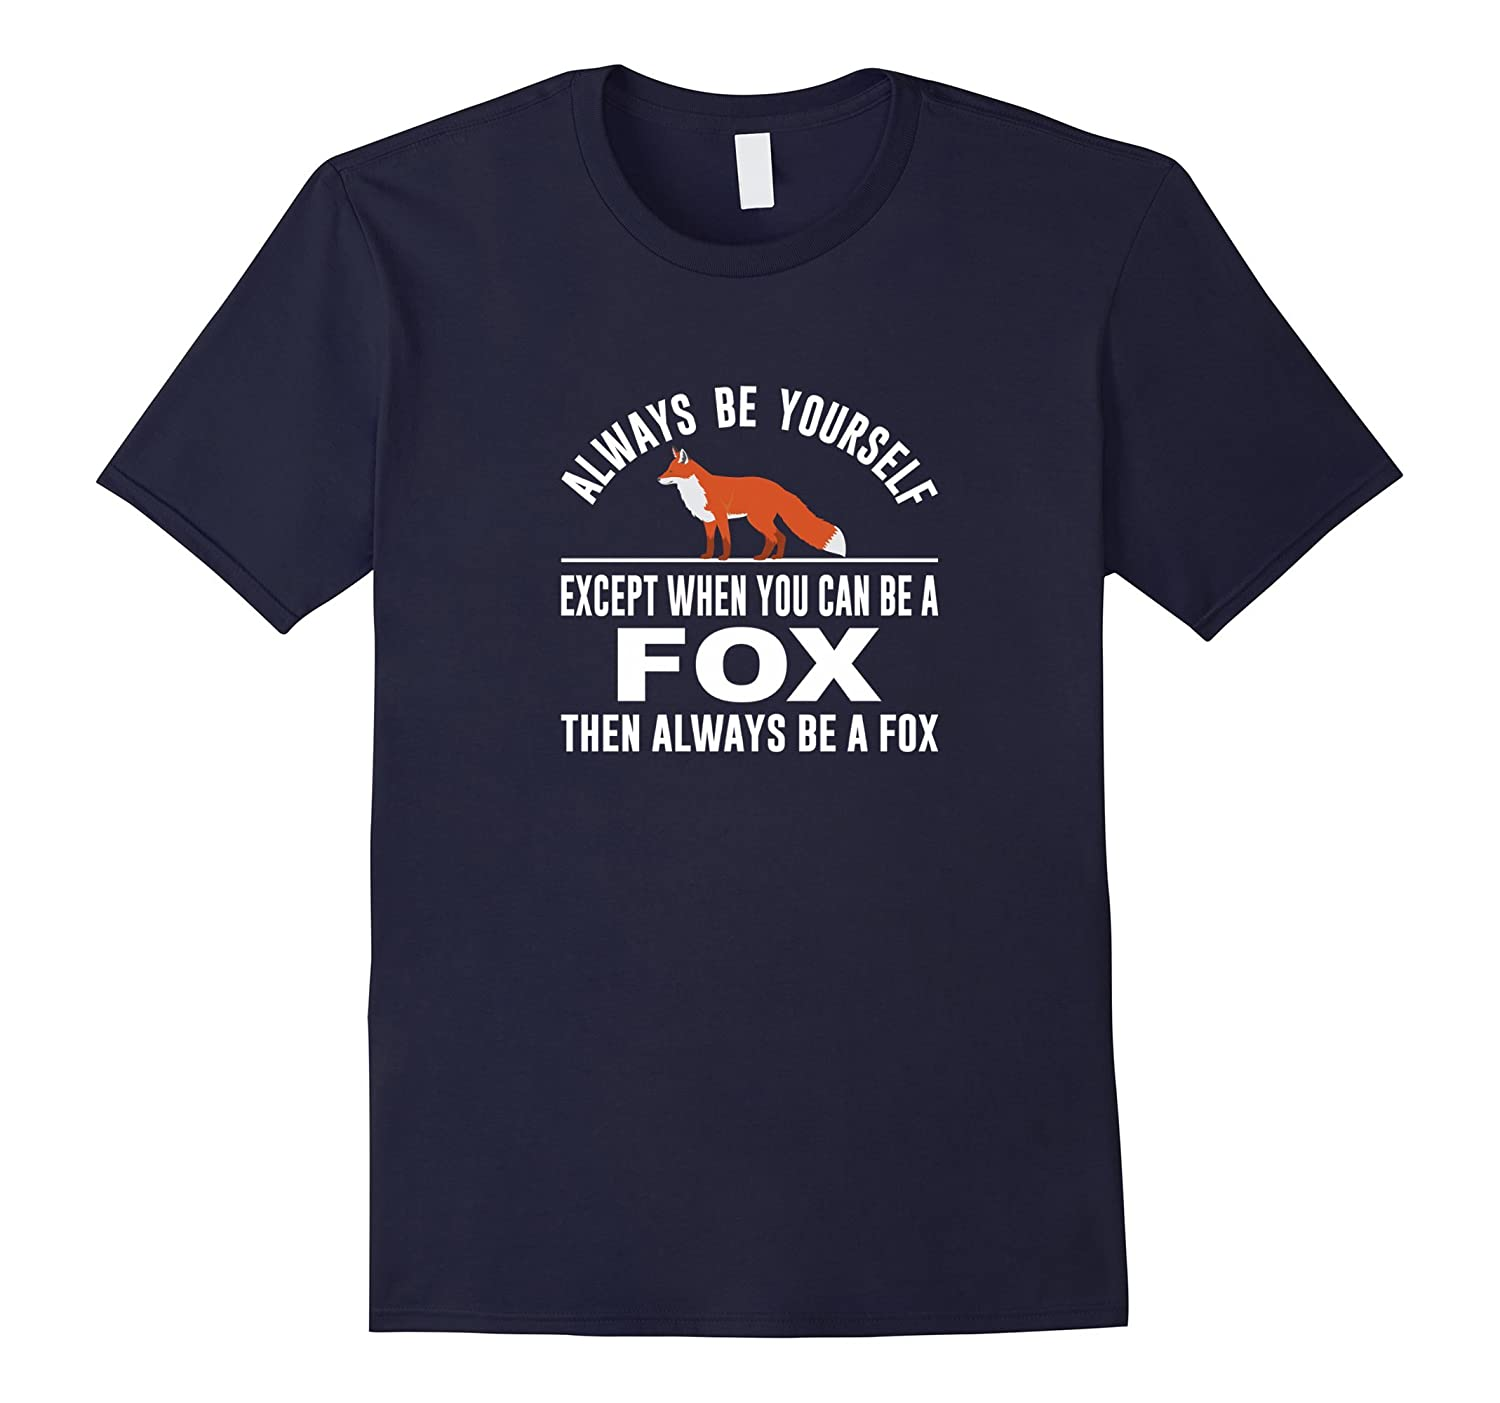 Always Be Yourself - Except When You Can Be a Fox Shirt-BN